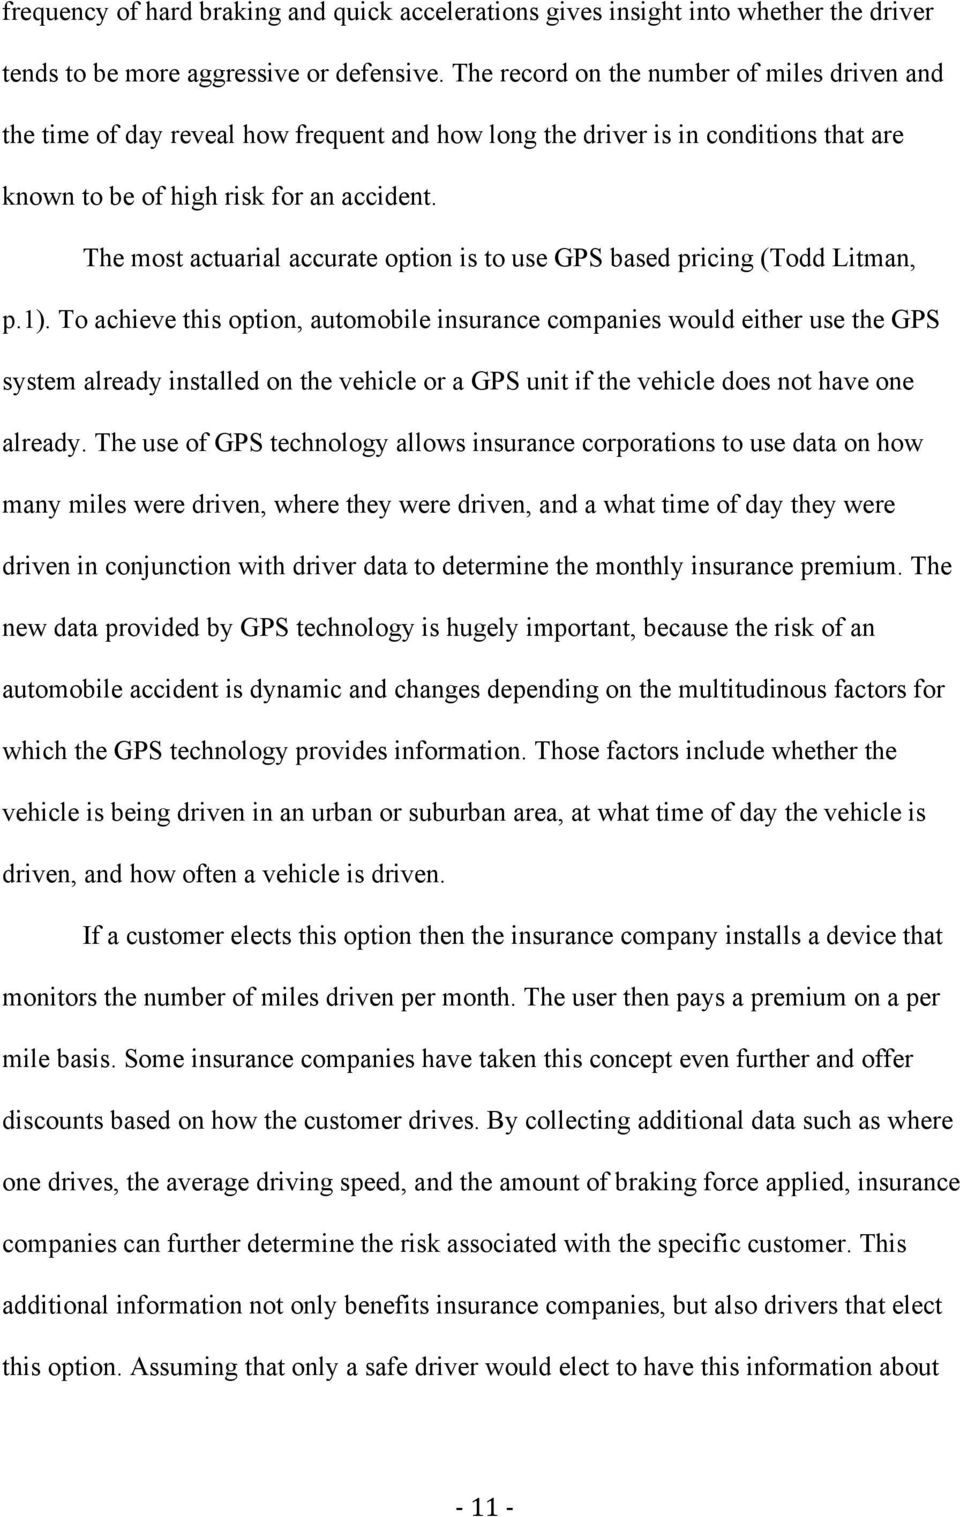 The most actuarial accurate option is to use GPS based pricing (Todd Litman, p.1).